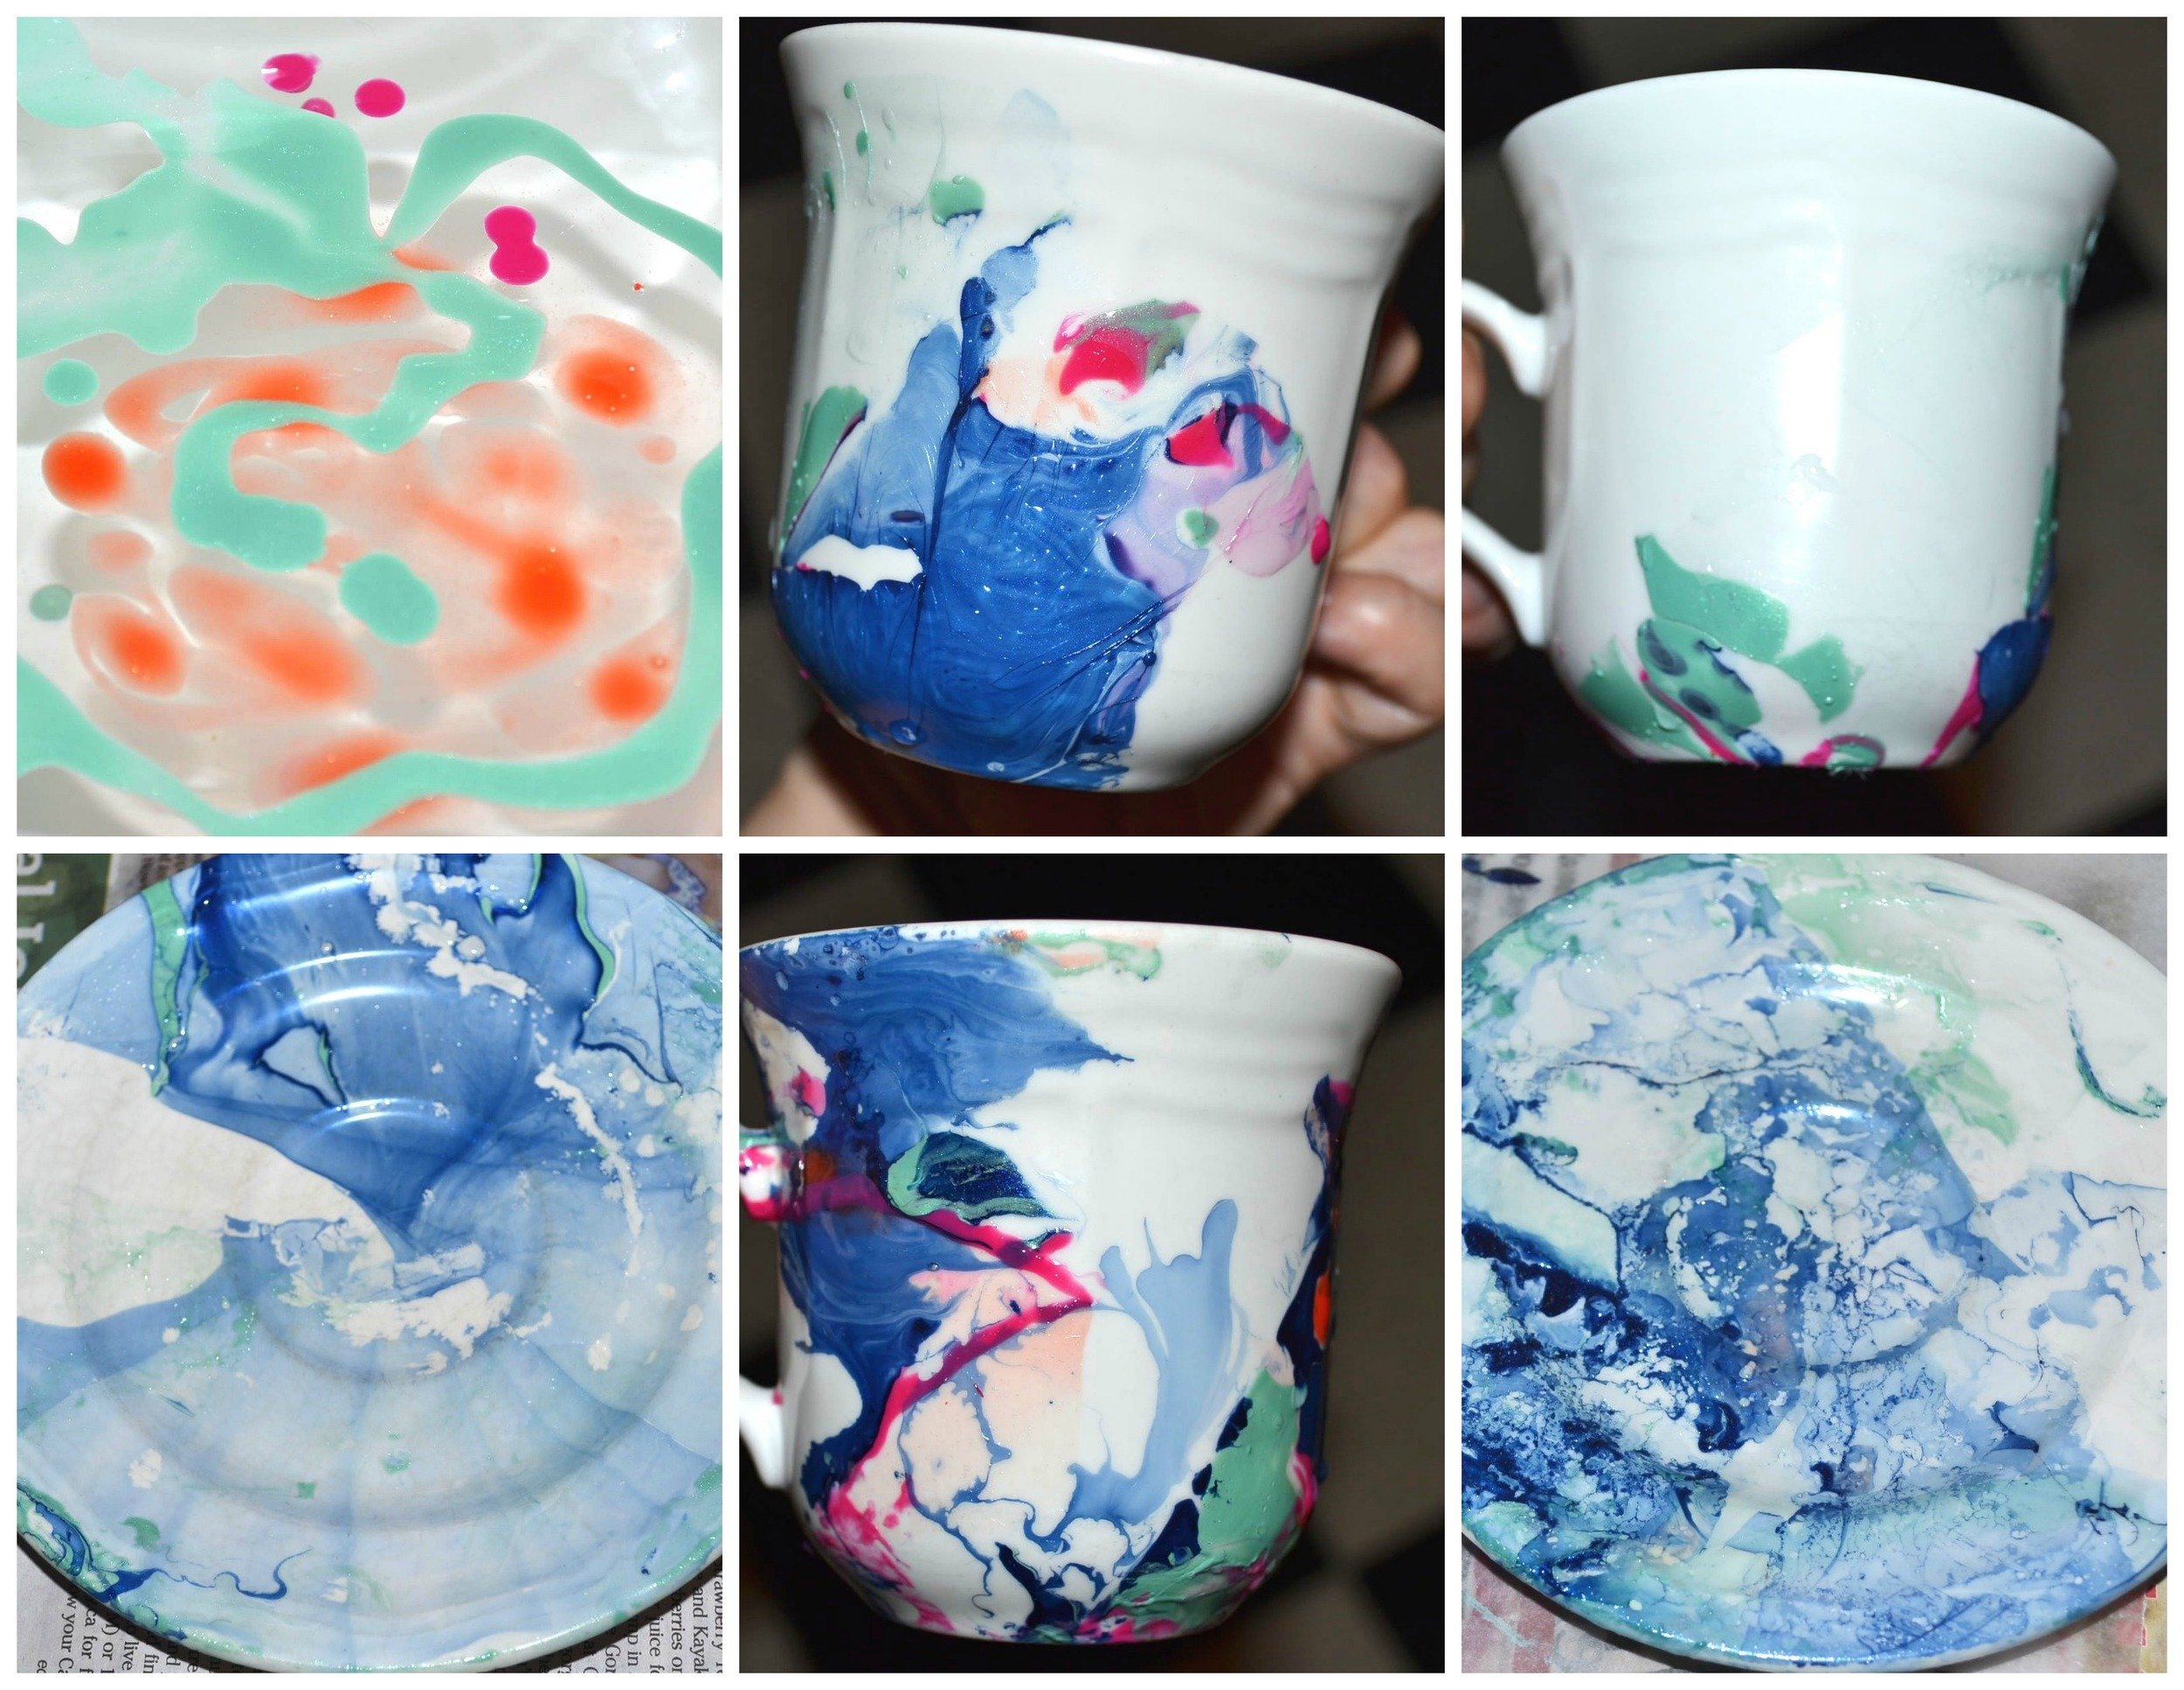 Various Mug and Saucer Designs Photo Credit: Michelle Somers